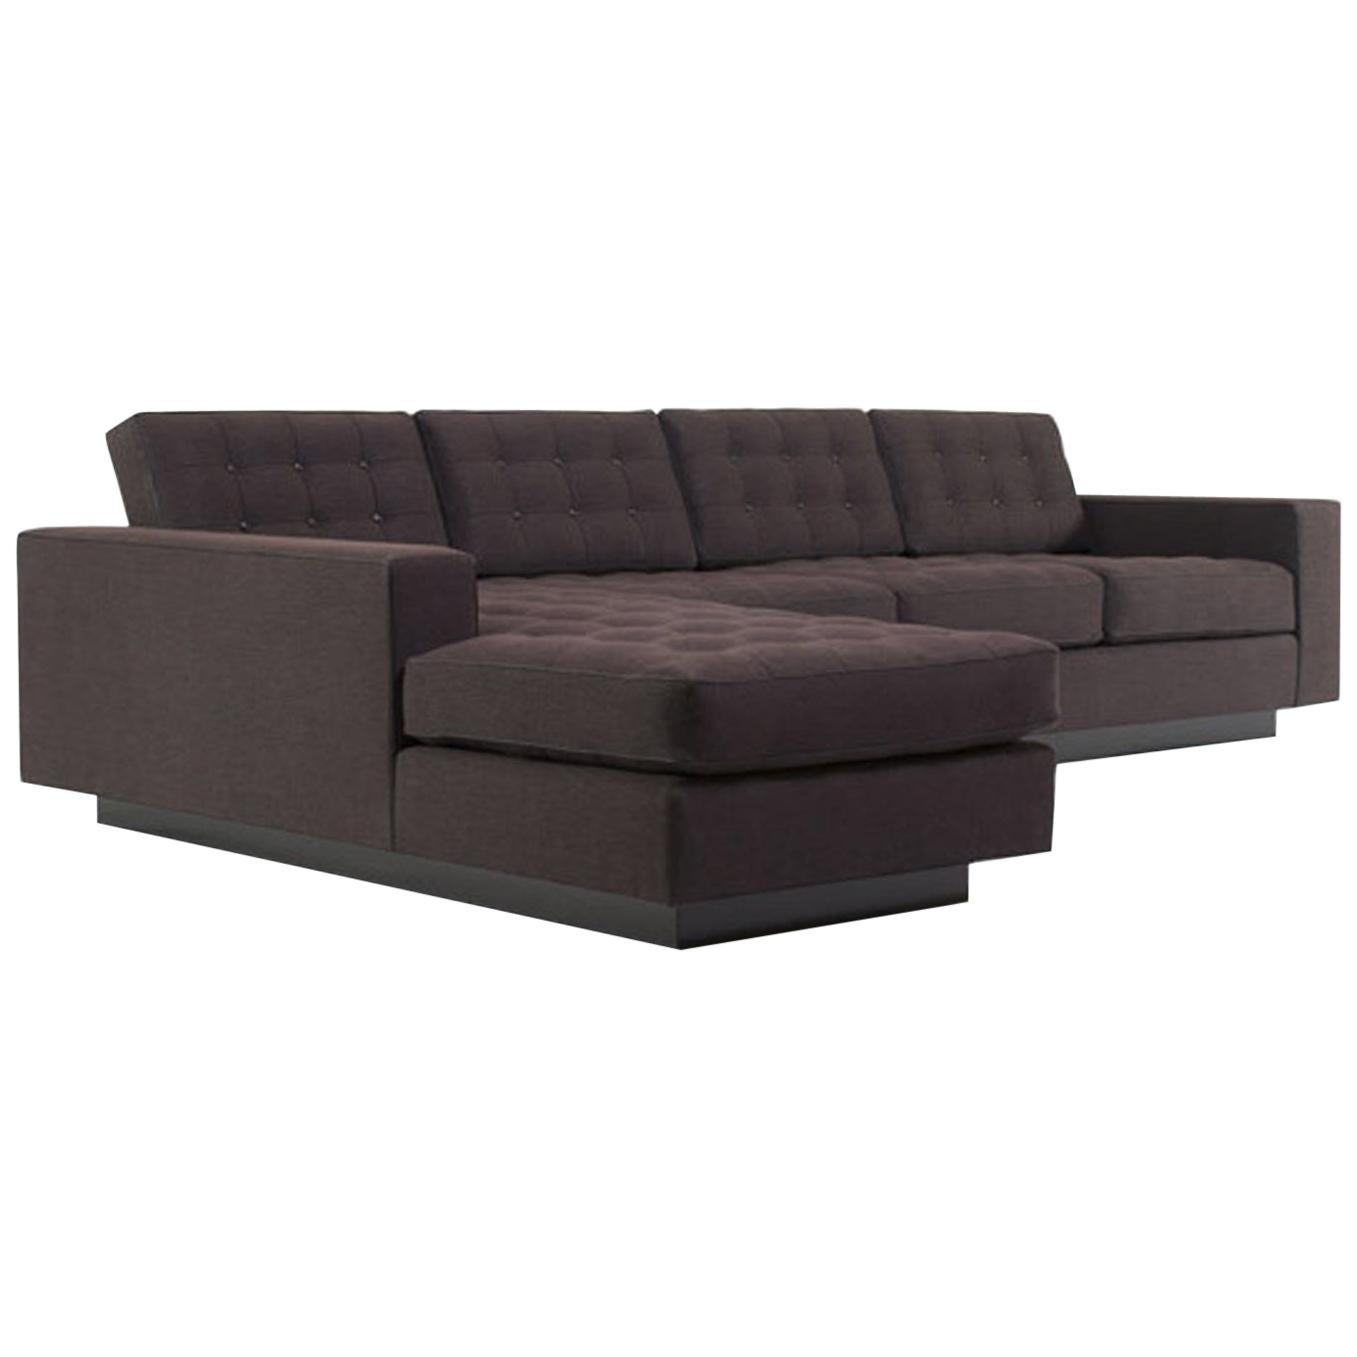 Station Sectional Button Tufting Loose Seat Back Cushions Base Lacquer Self Welt